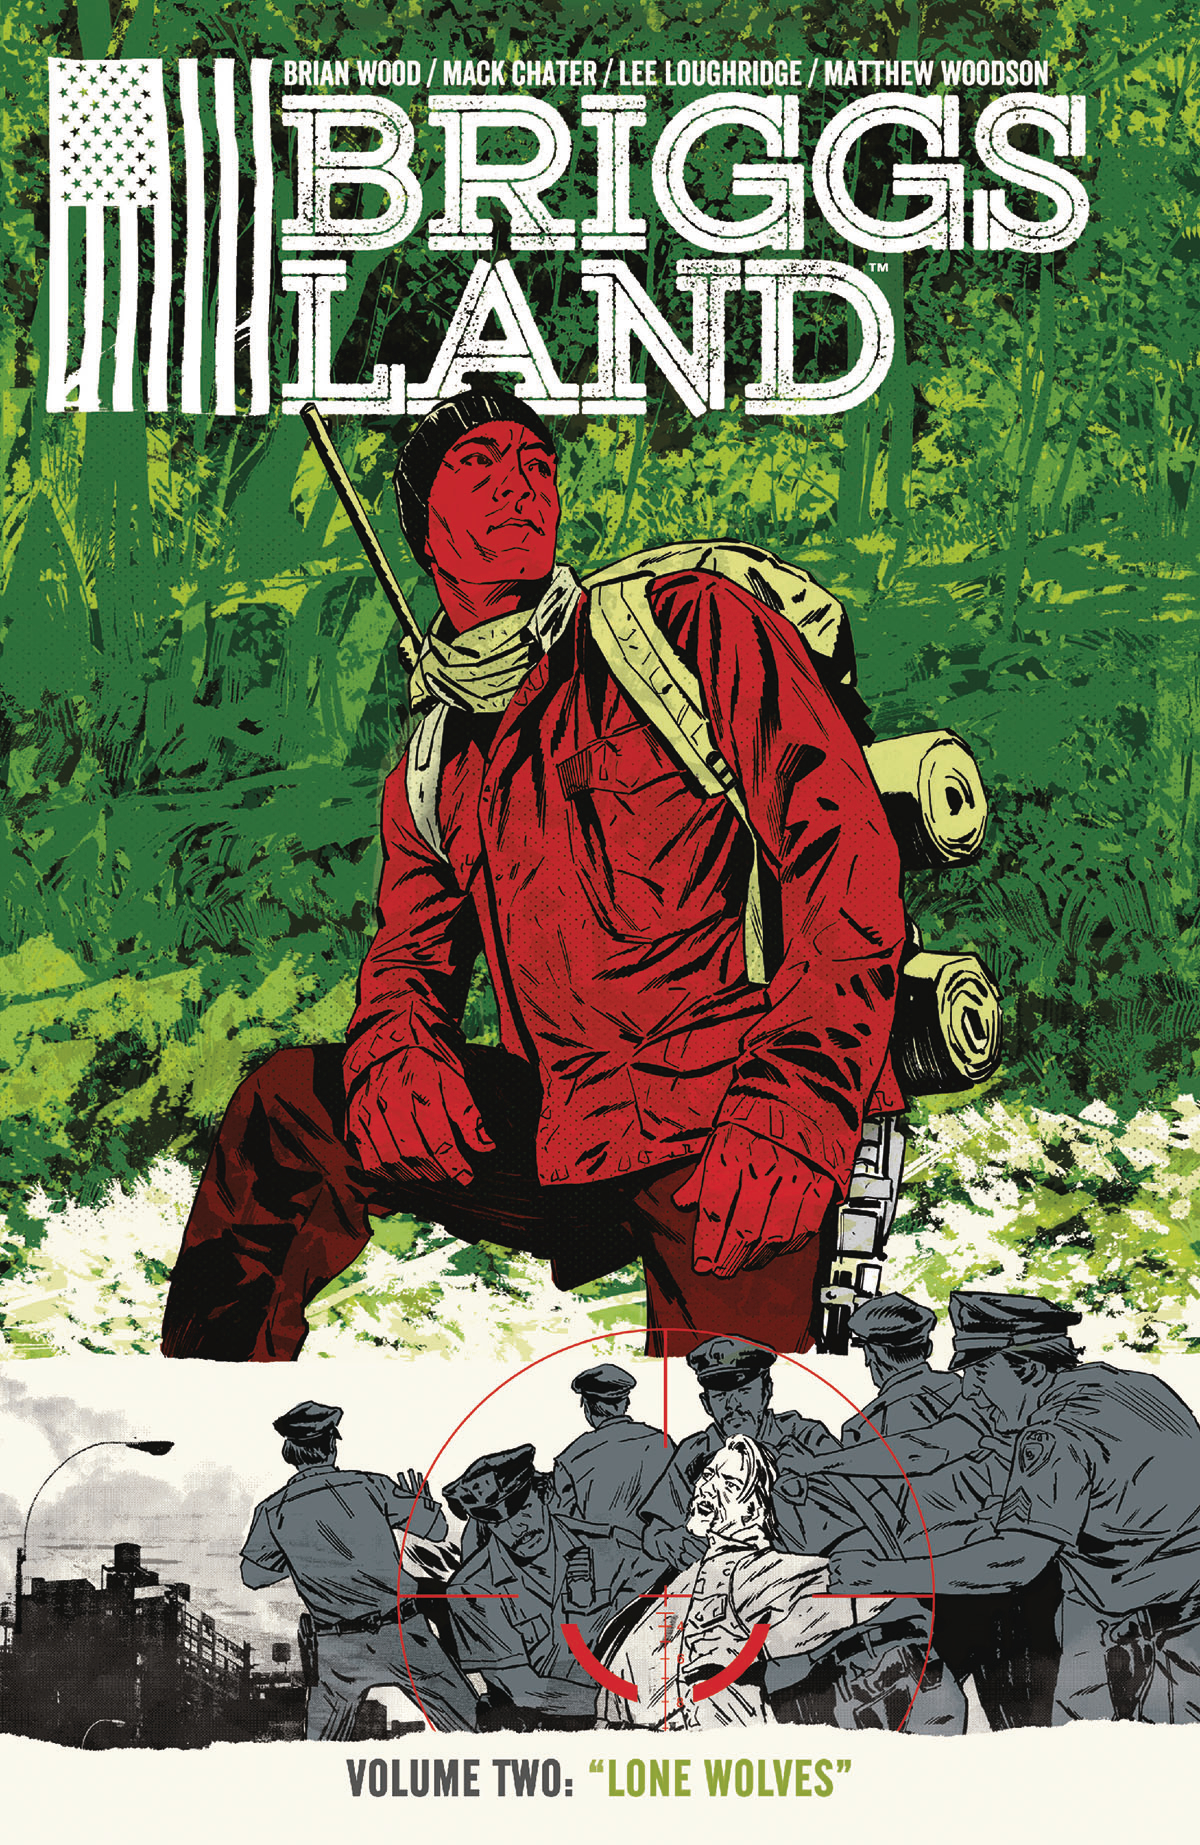 BRIGGS LAND TP VOL 02 LONE WOLVES